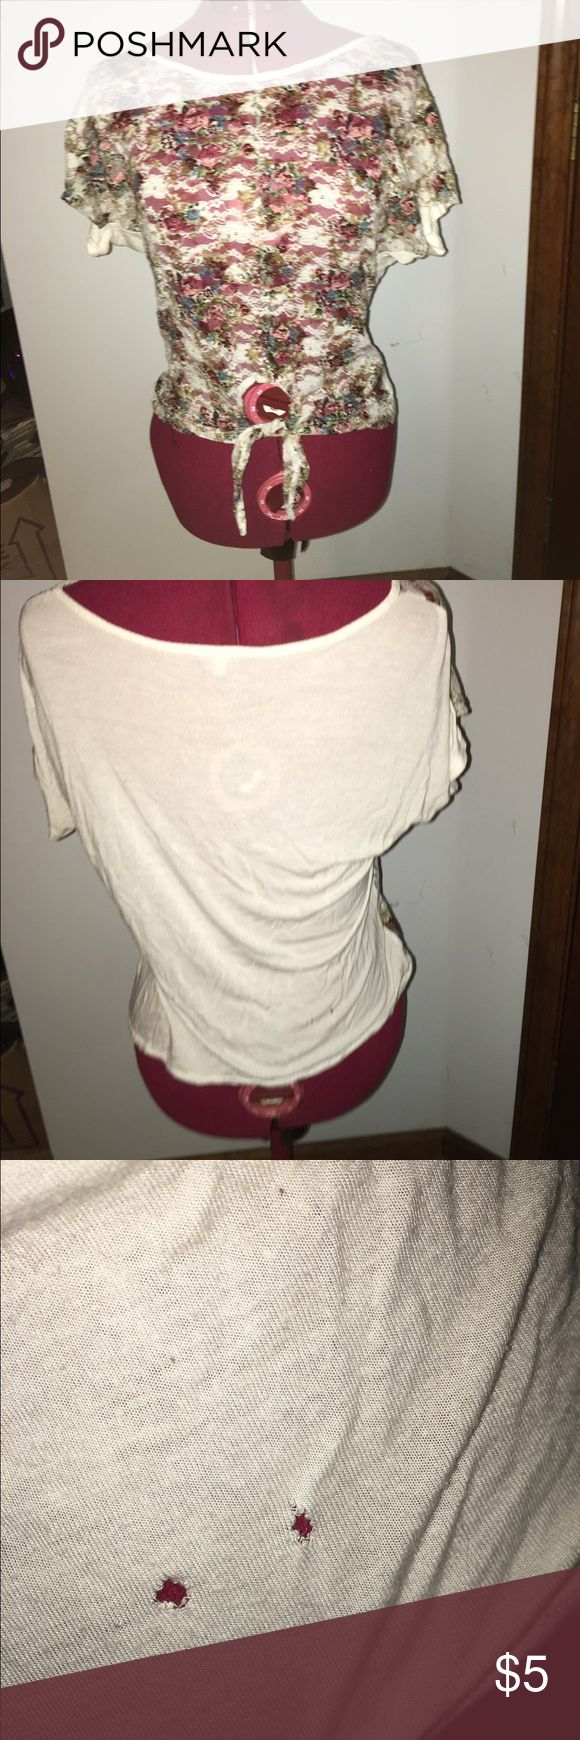 Floral Lace Top Floral lace located in the front part of the shirt, see through. The back part of the shirt is all white. There are two small holes on the lower part of the back. Charlotte Russe Tops Crop Tops